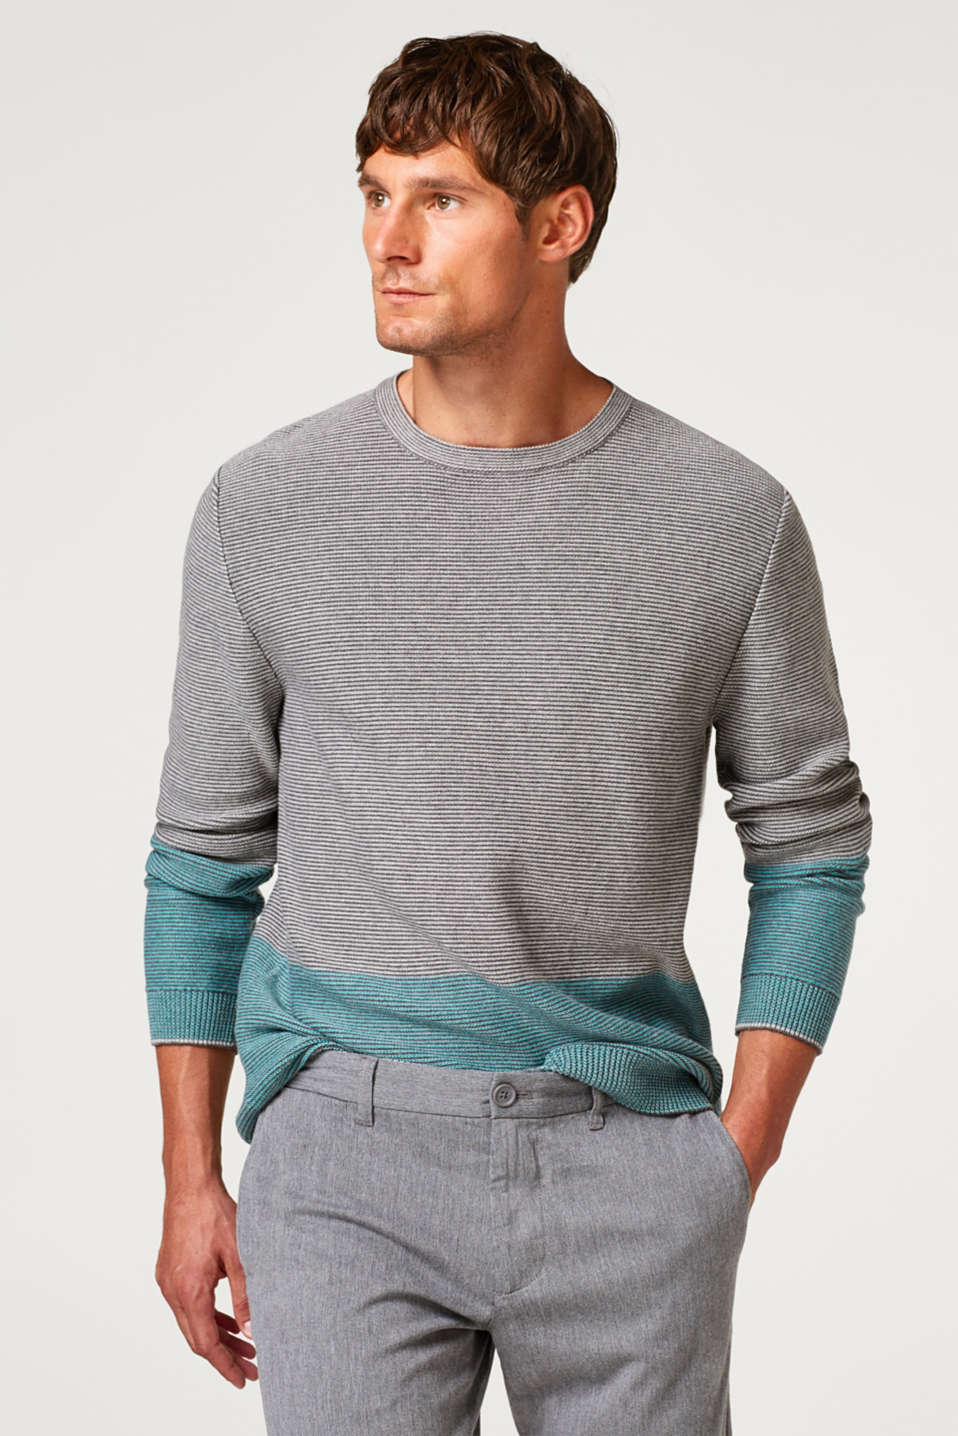 Esprit - Textured knit jumper, 100% cotton